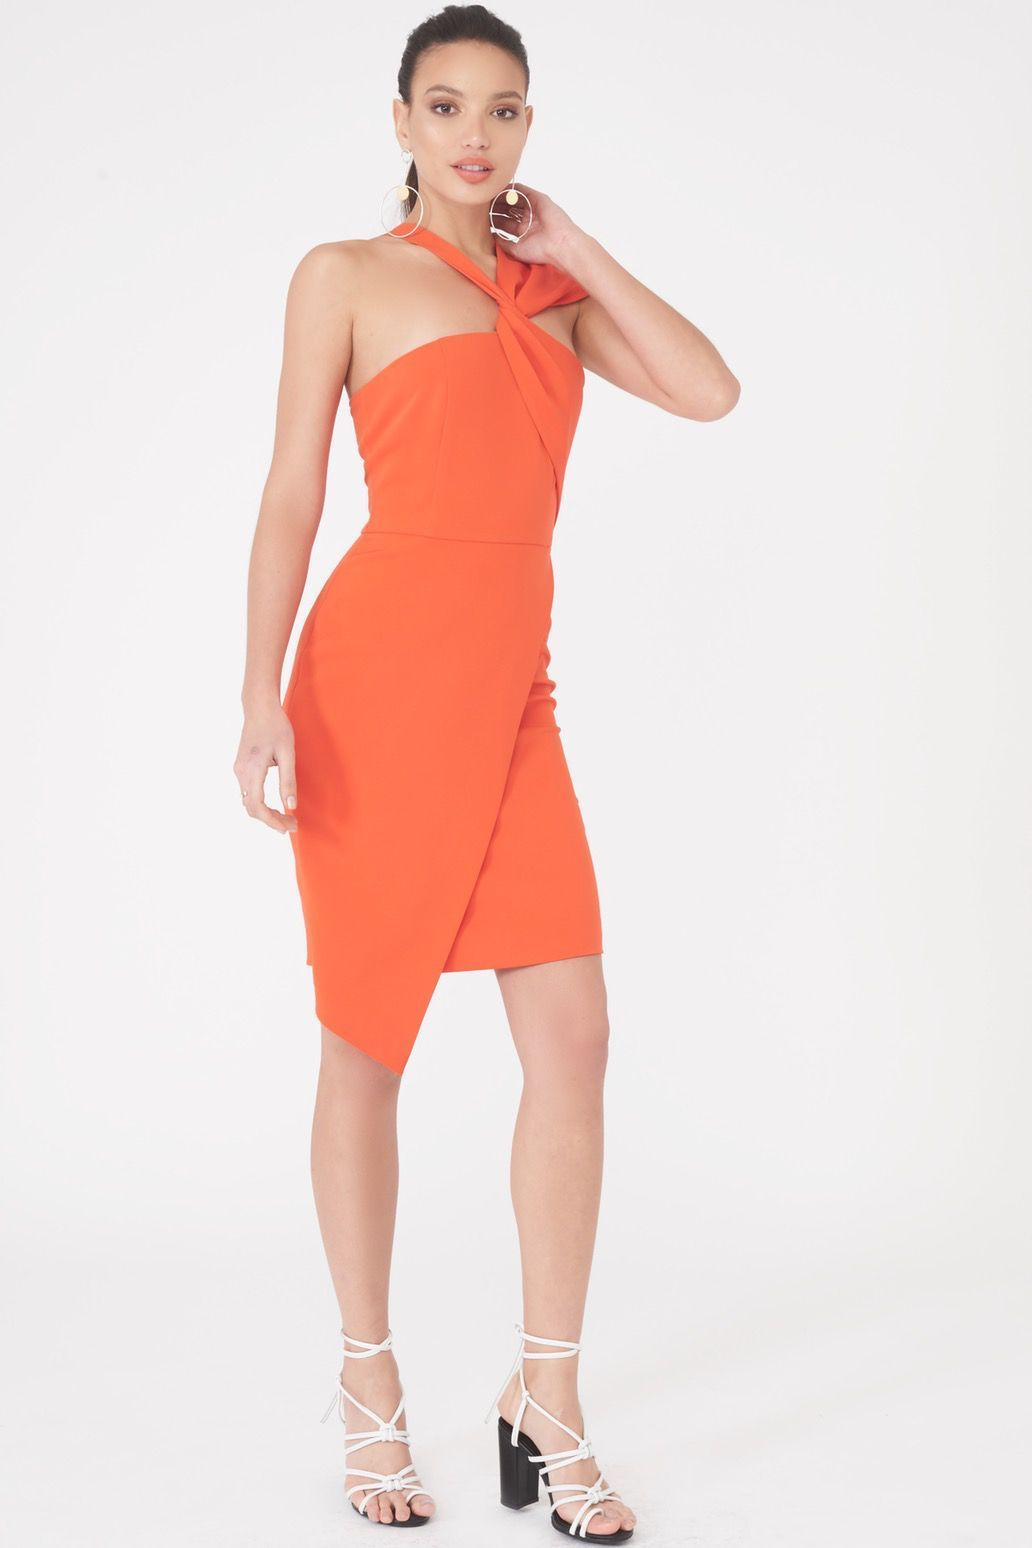 Image of Asymmetric Twist Detail Dress in Orange